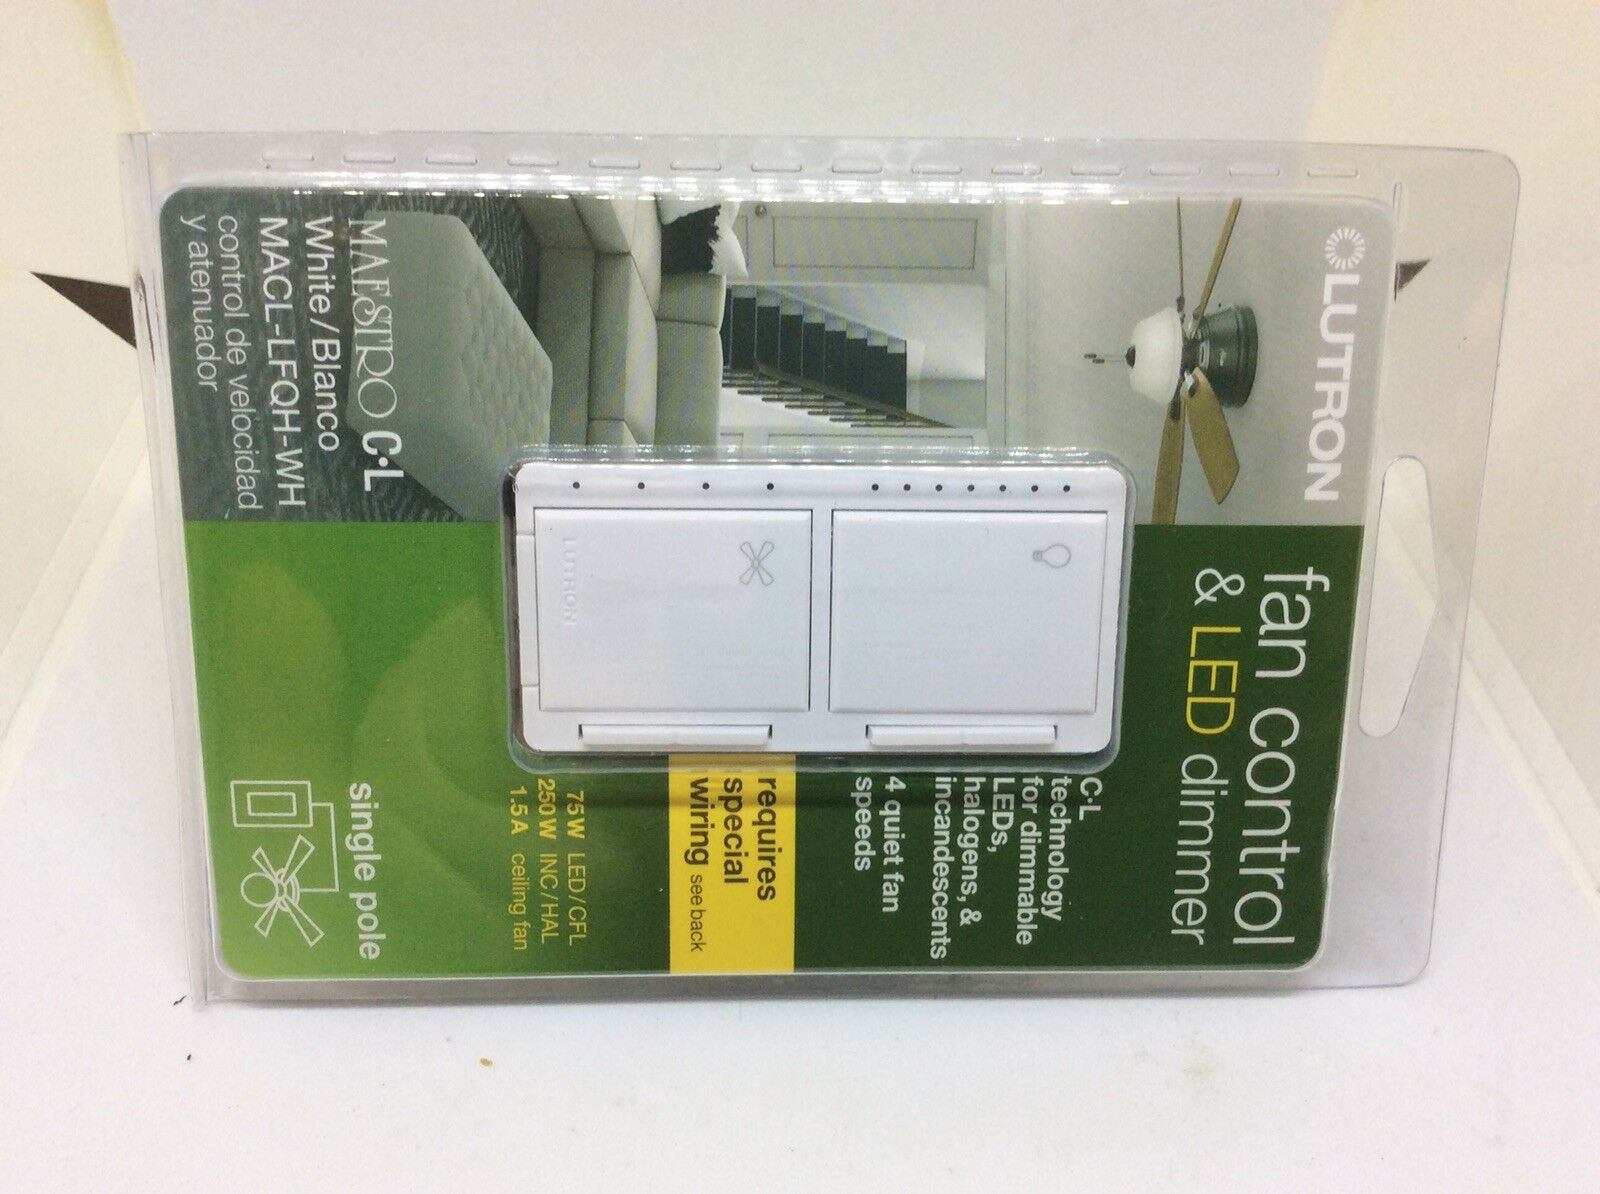 UPC 784276239264 - Maestro Fan Control and Light Dimmer for